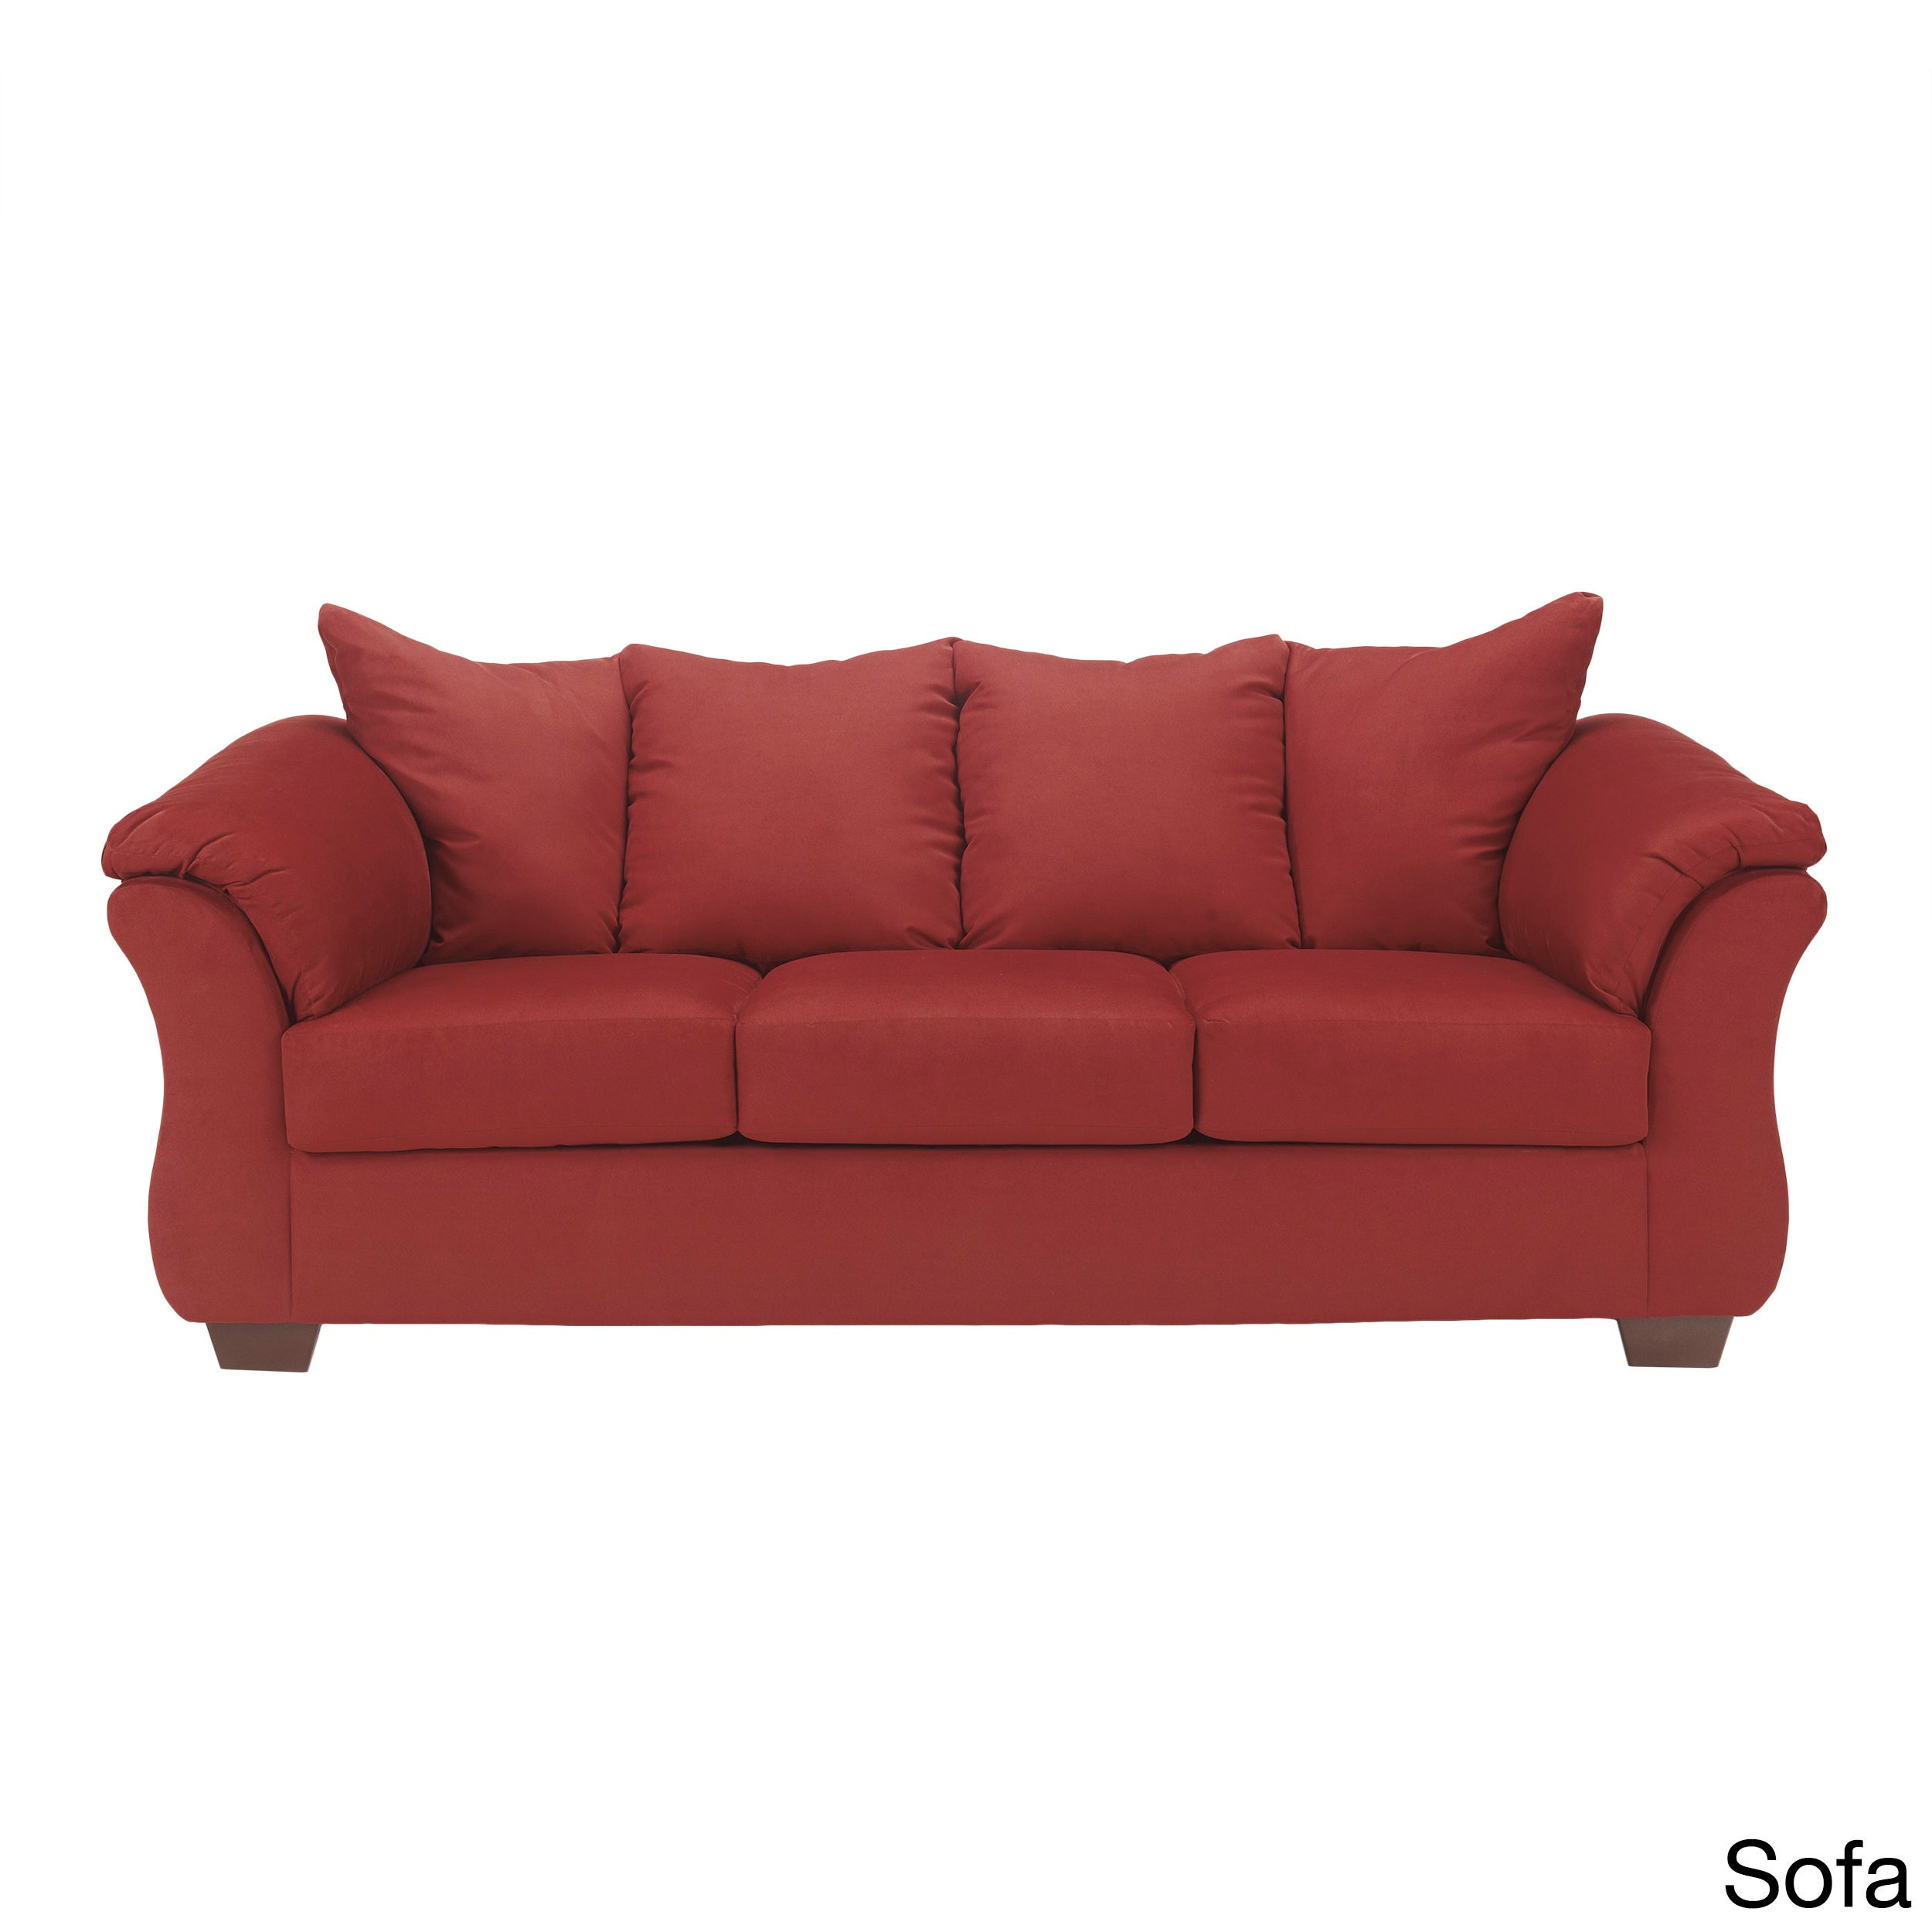 ideas sleeper sofa douglas hide bed and condo a new condofurniture loveseat by